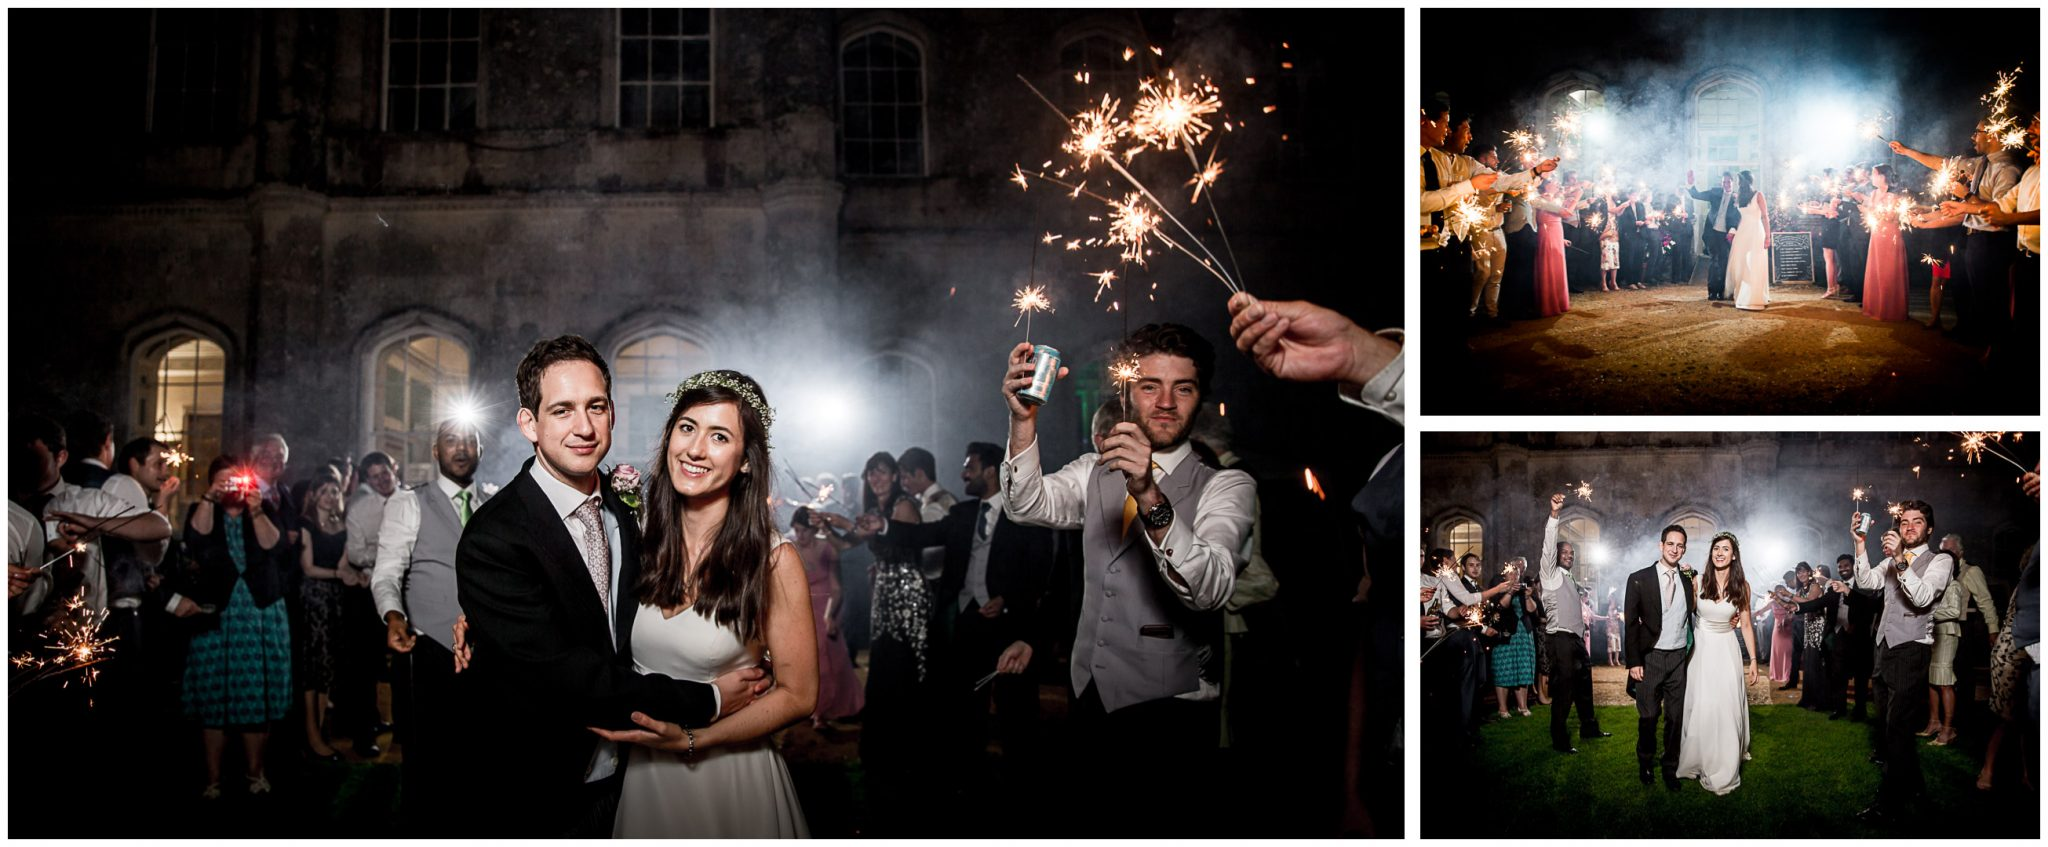 Couple and sparklers